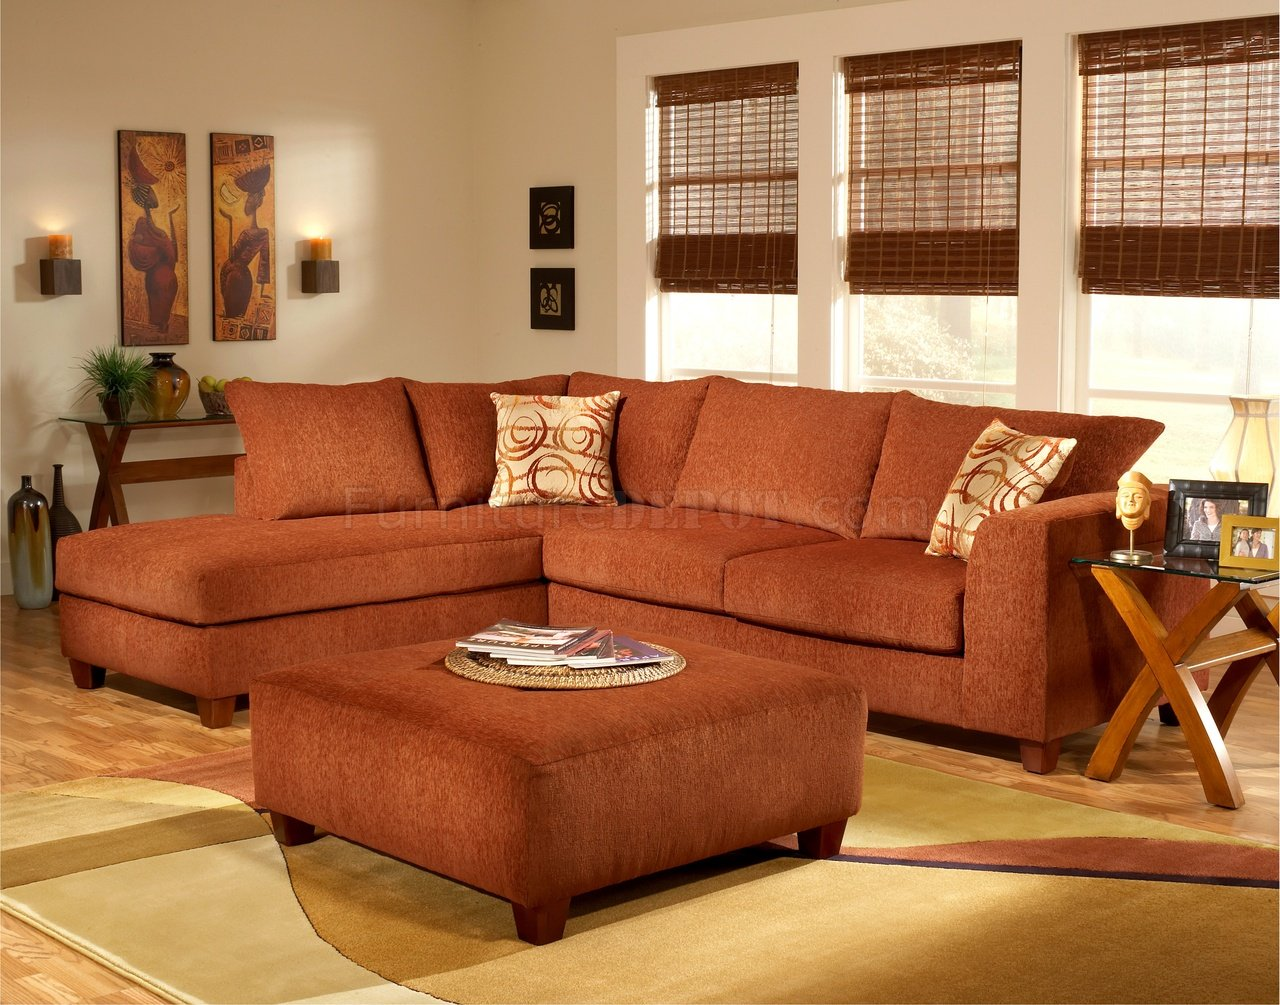 Terracotta fabric modern sectional sofa w optional ottoman for Ecksofa couch